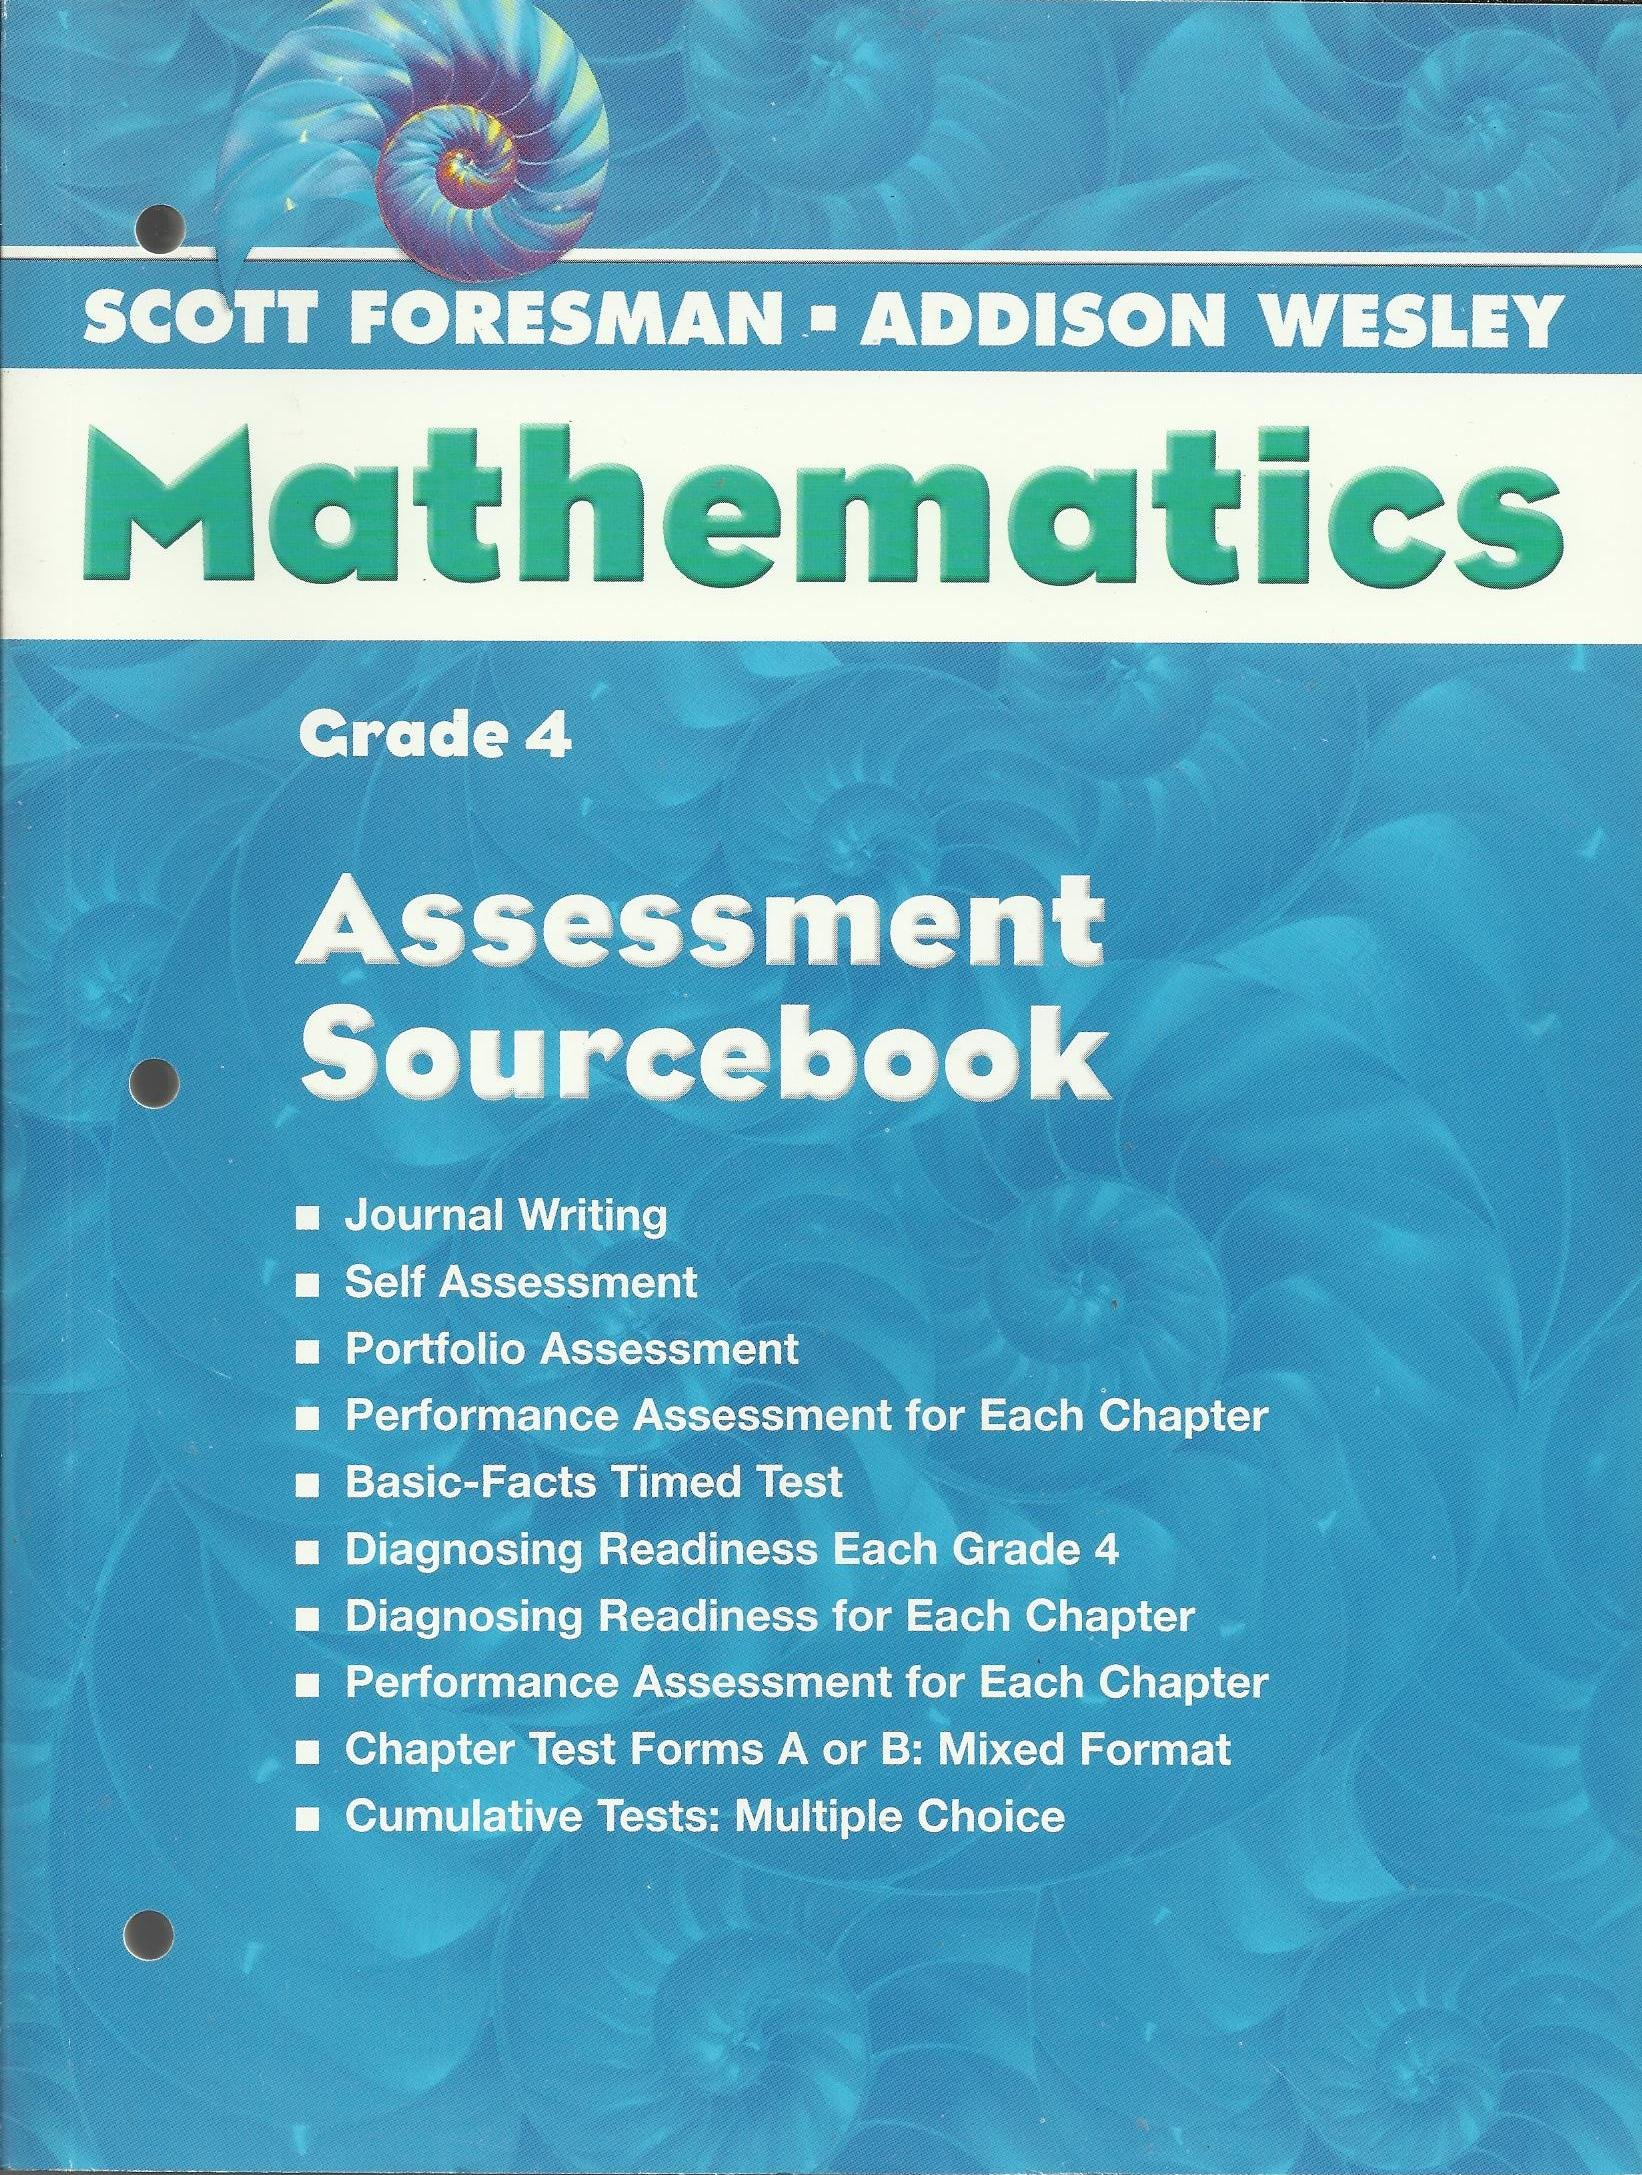 Grade 4 Assessment Sourcebook (Scott Foresman-Addison Wesley ...